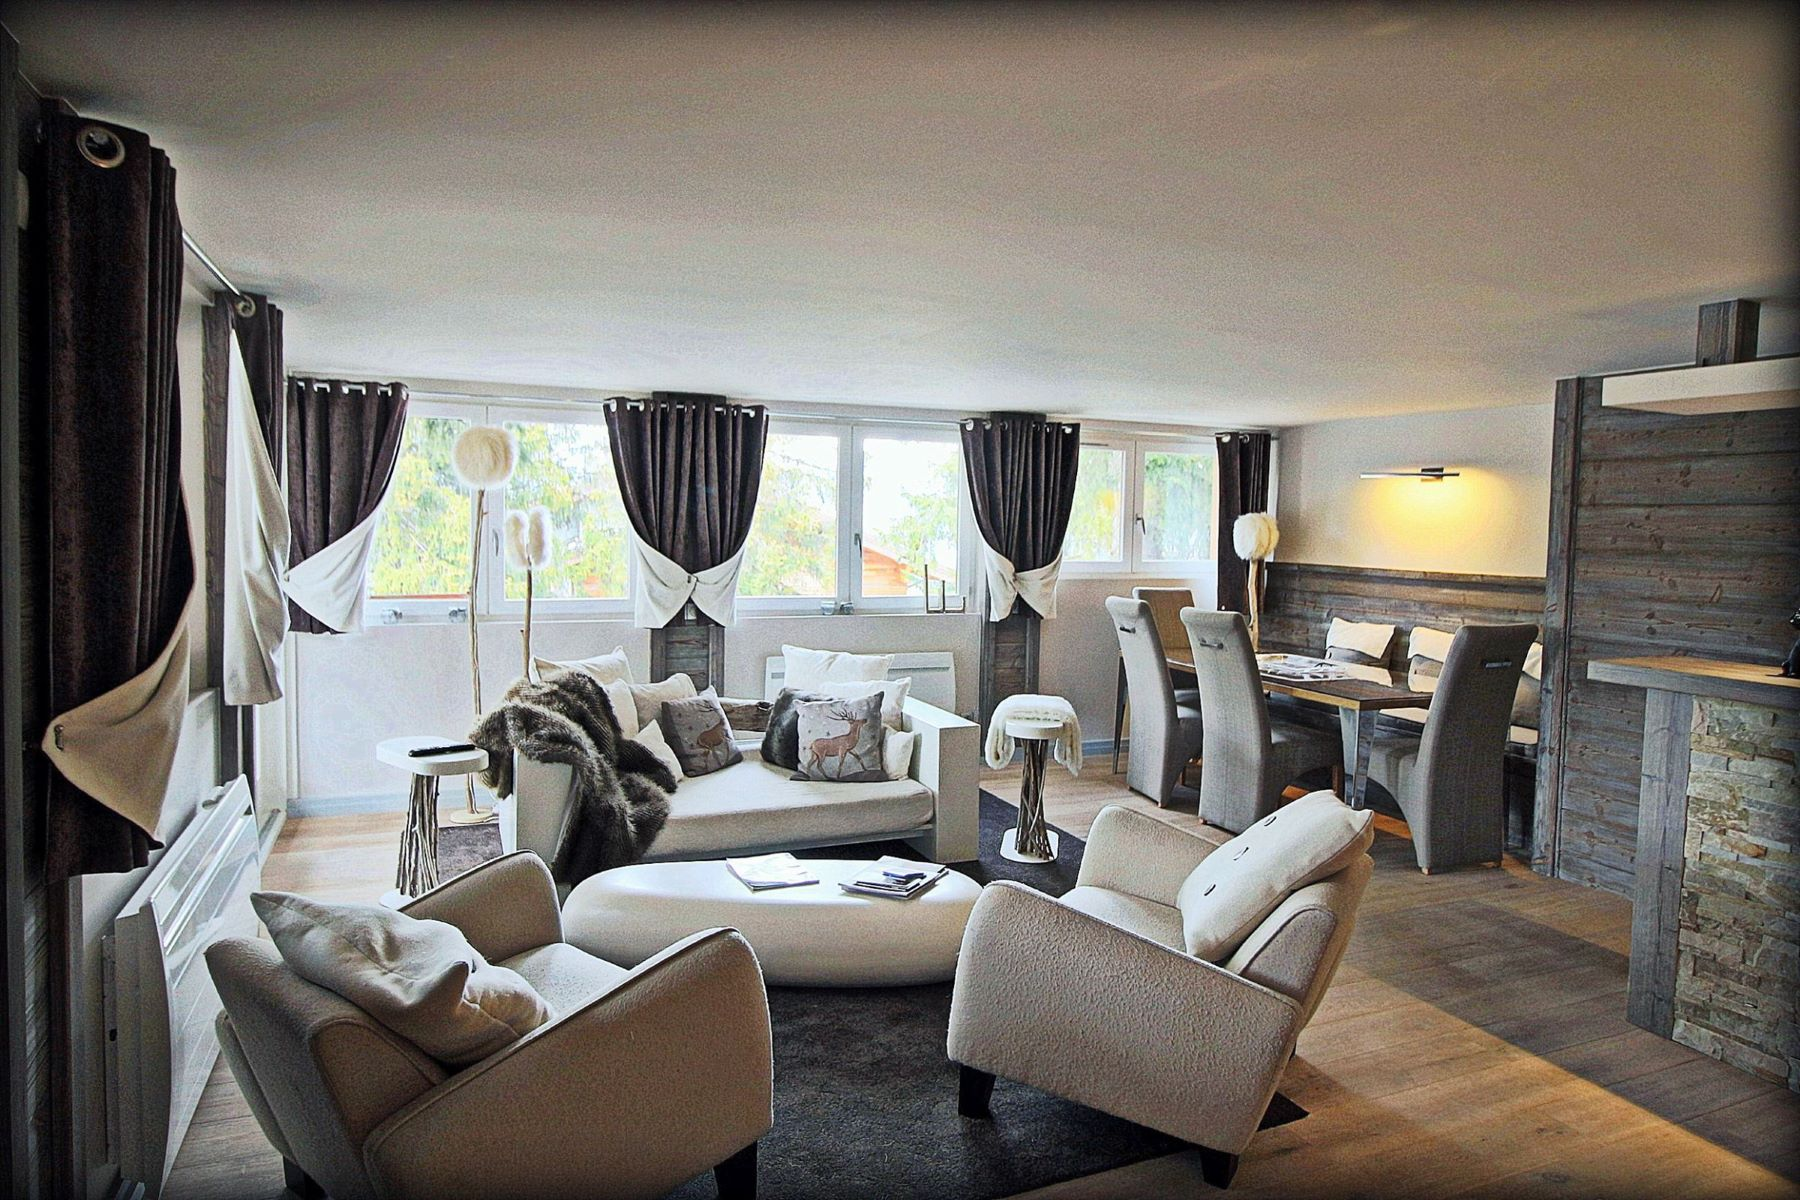 Apartment for Rent at Luxury penthouse Neige Courchevel Courchevel, Rhone-Alpes 73120 France